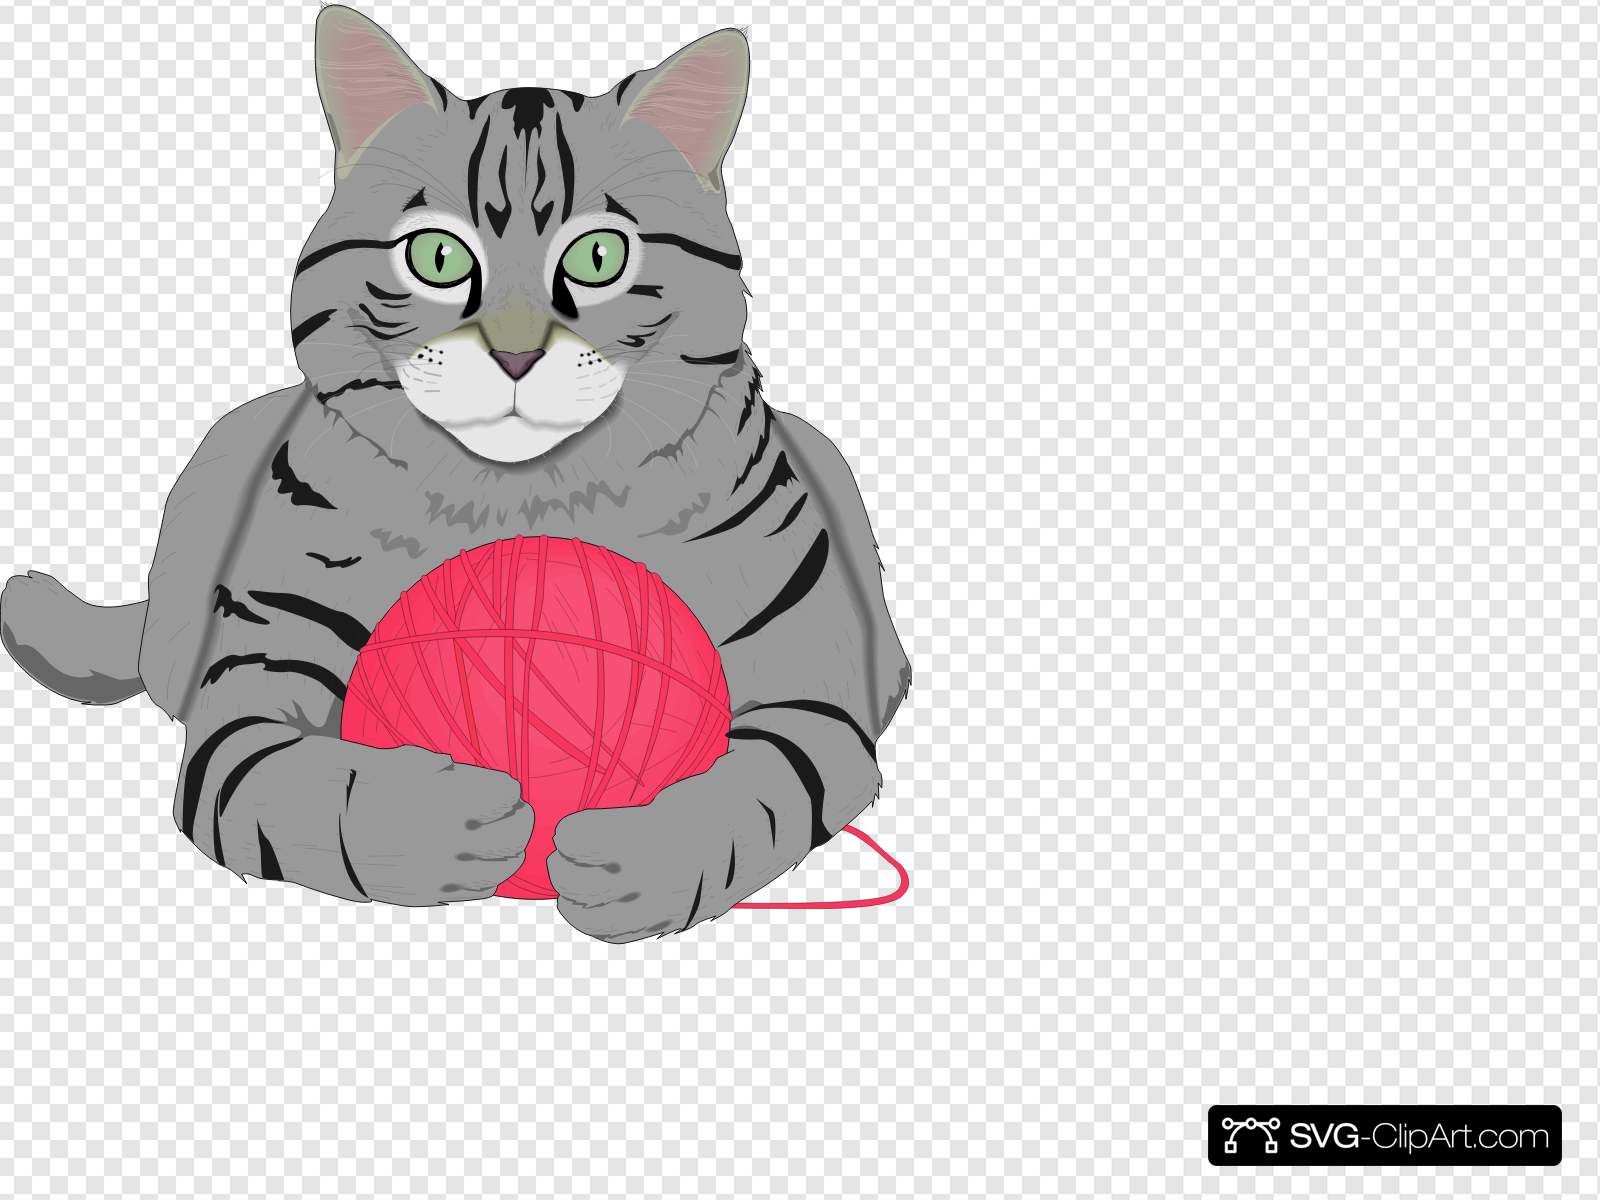 Cat With Pink Yarn Clip art, Icon and SVG.